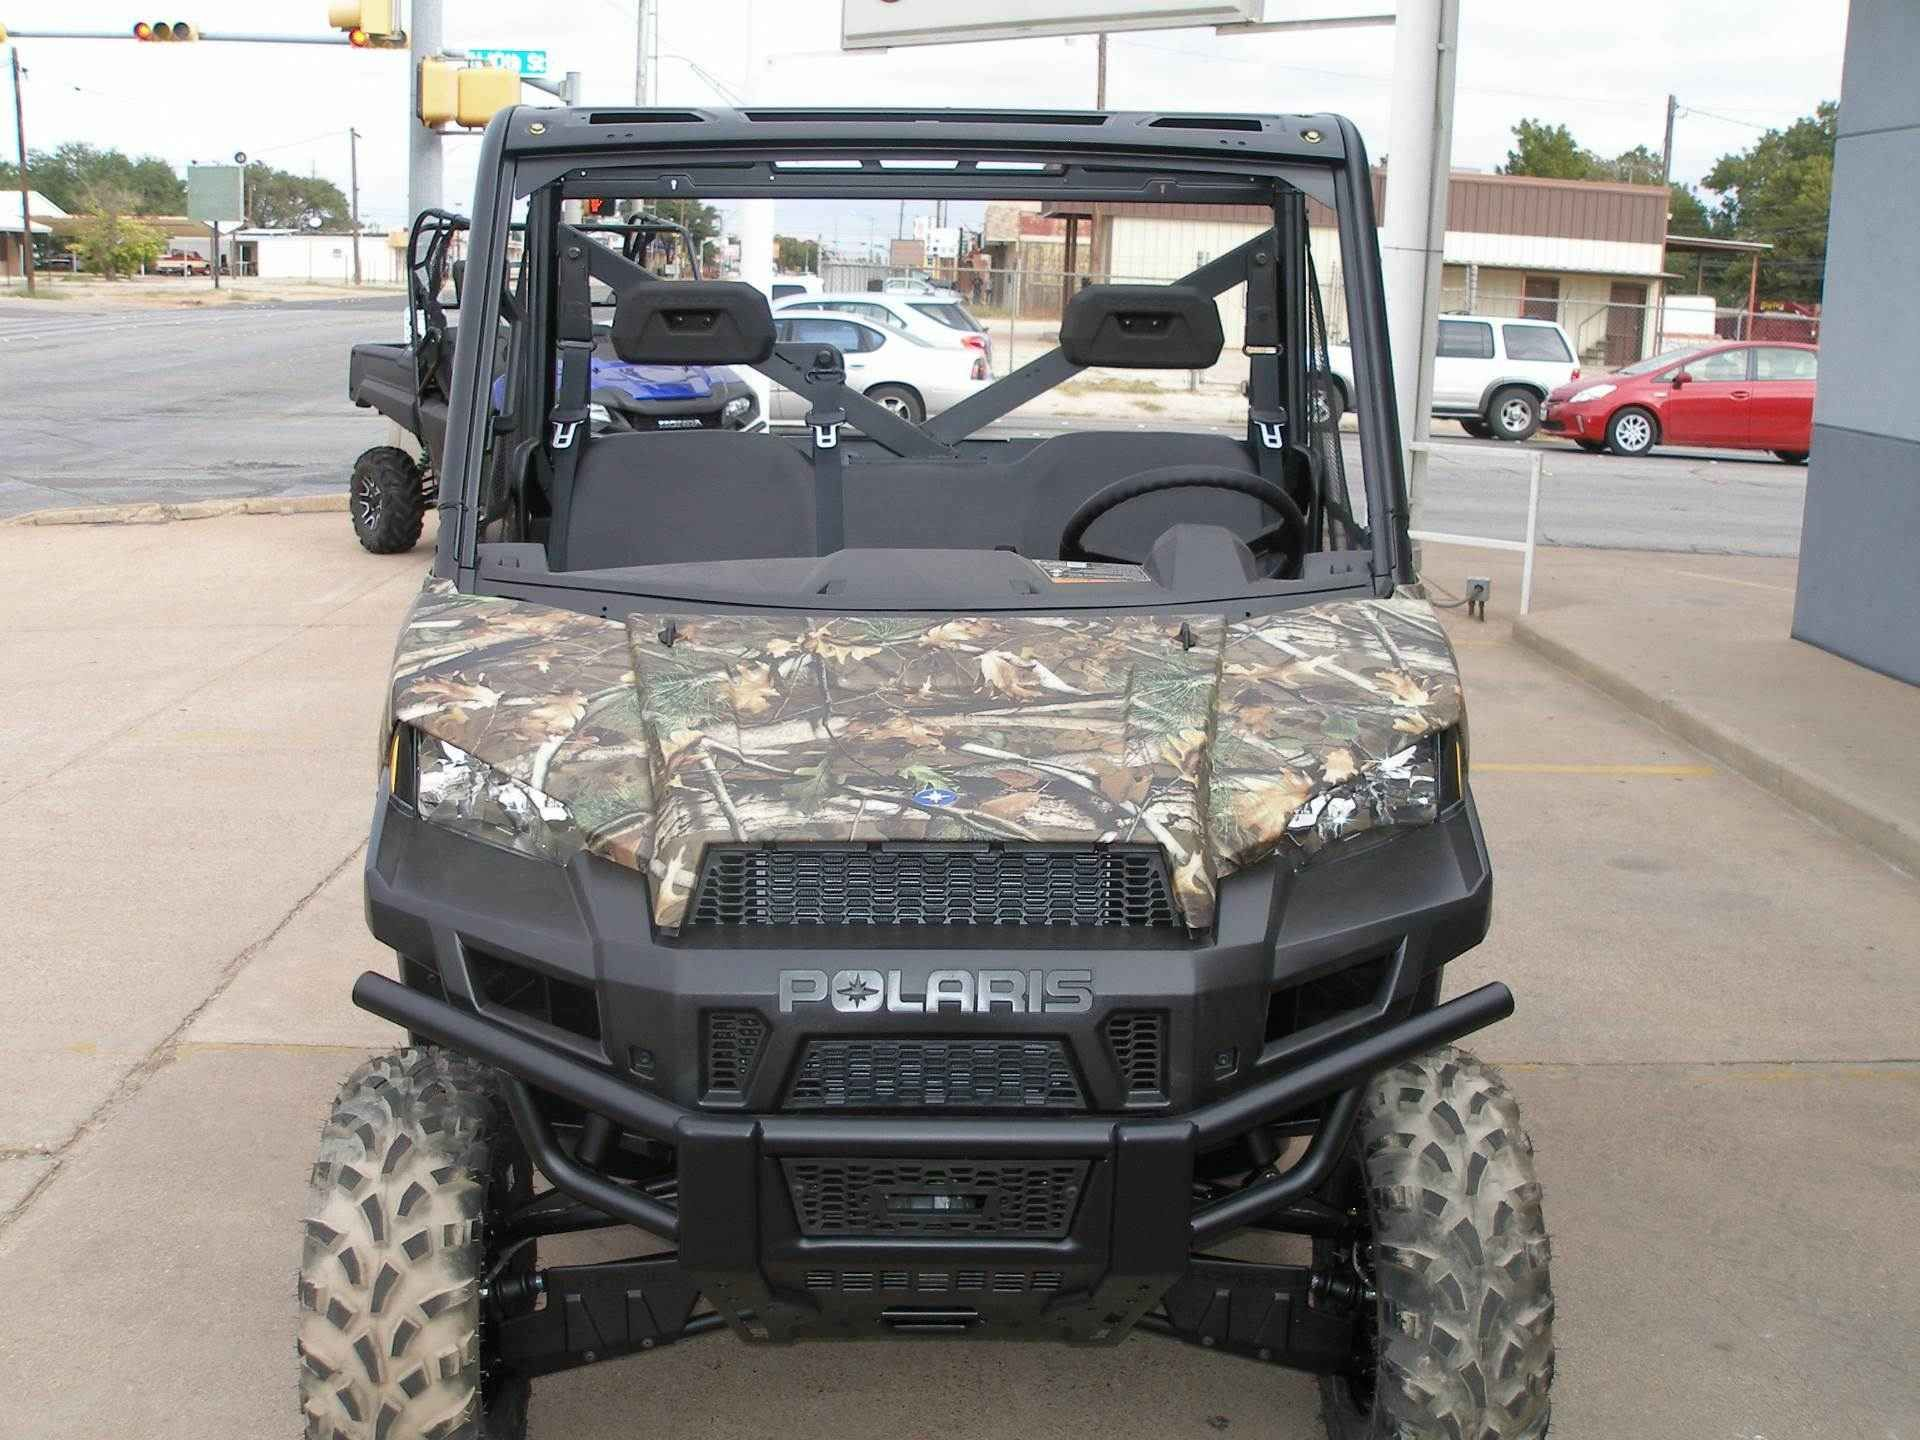 New 2017 Polaris Ranger XP® 900 Camo ATVs For Sale in Texas. Polaris Pursuit Camo High output 68-horsepower ProStar® engine Smooth riding suspension travel and refined cab comfort Industry exclusive Pro-Fit cab integration